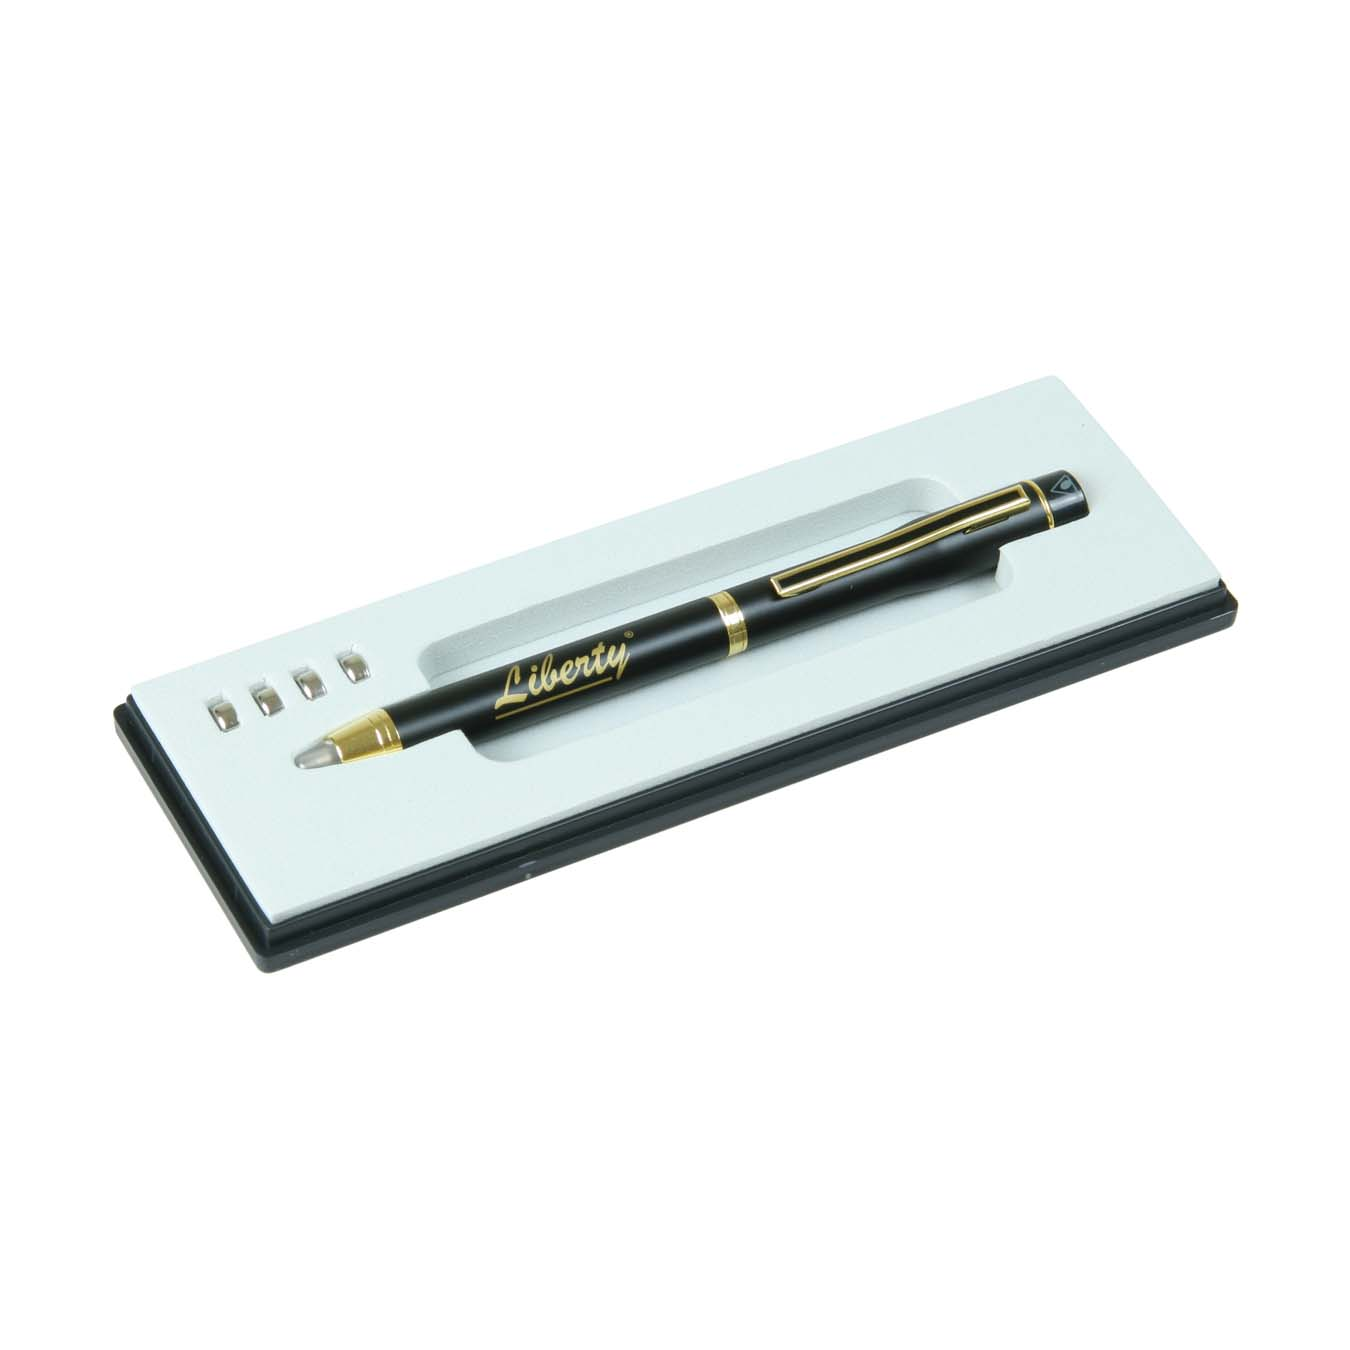 PWLL_2_Liberty-Pen-with-Yellow-LED-Light-Tip